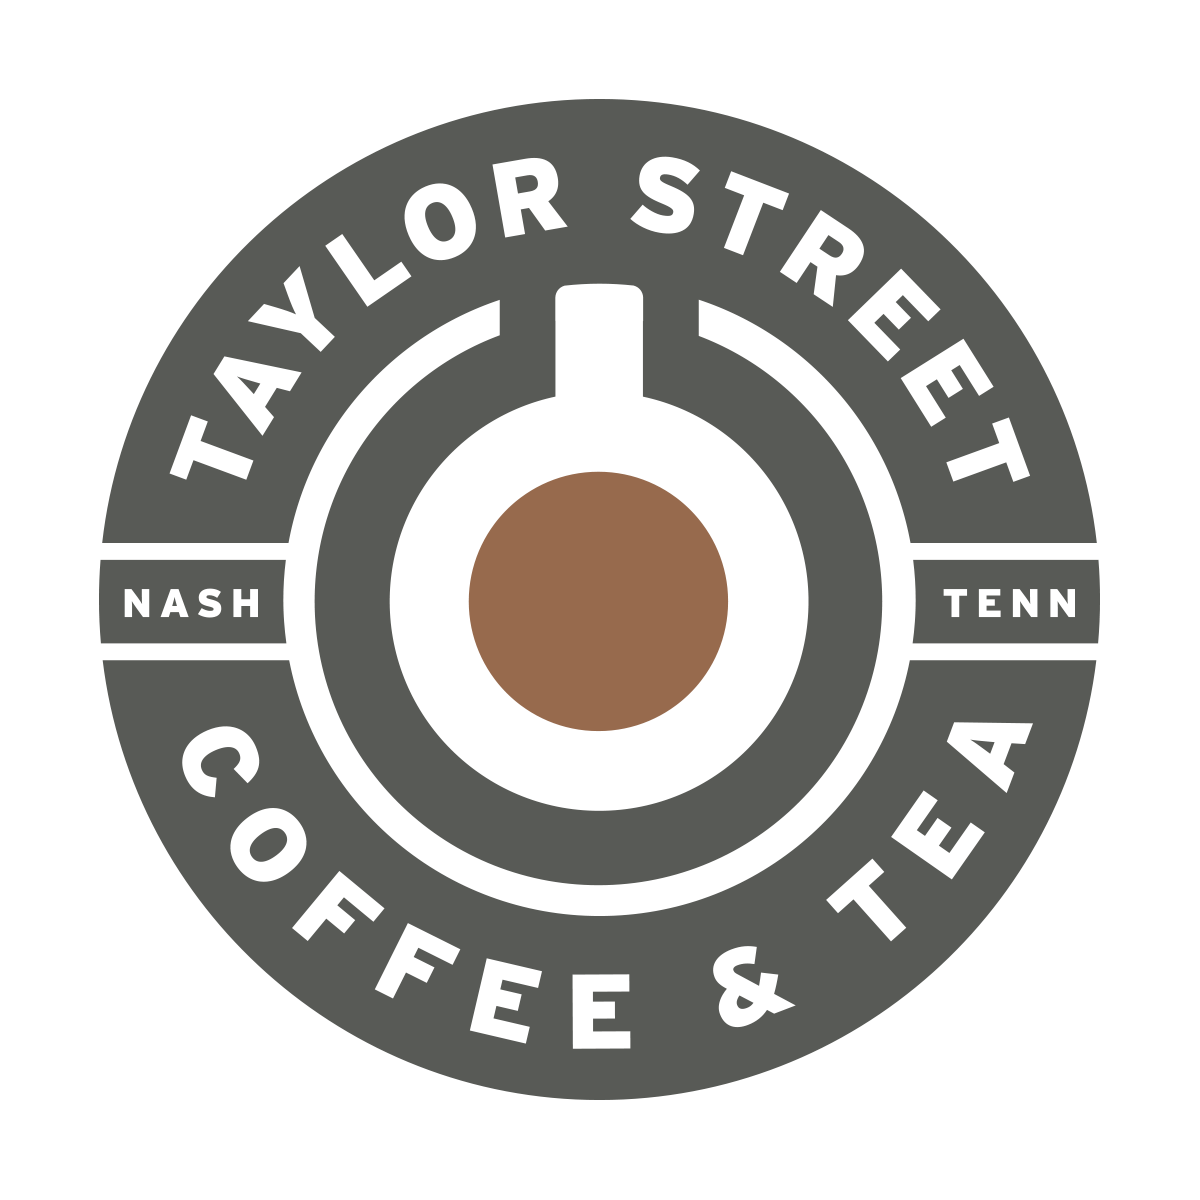 Taylor Street Coffee & Tea